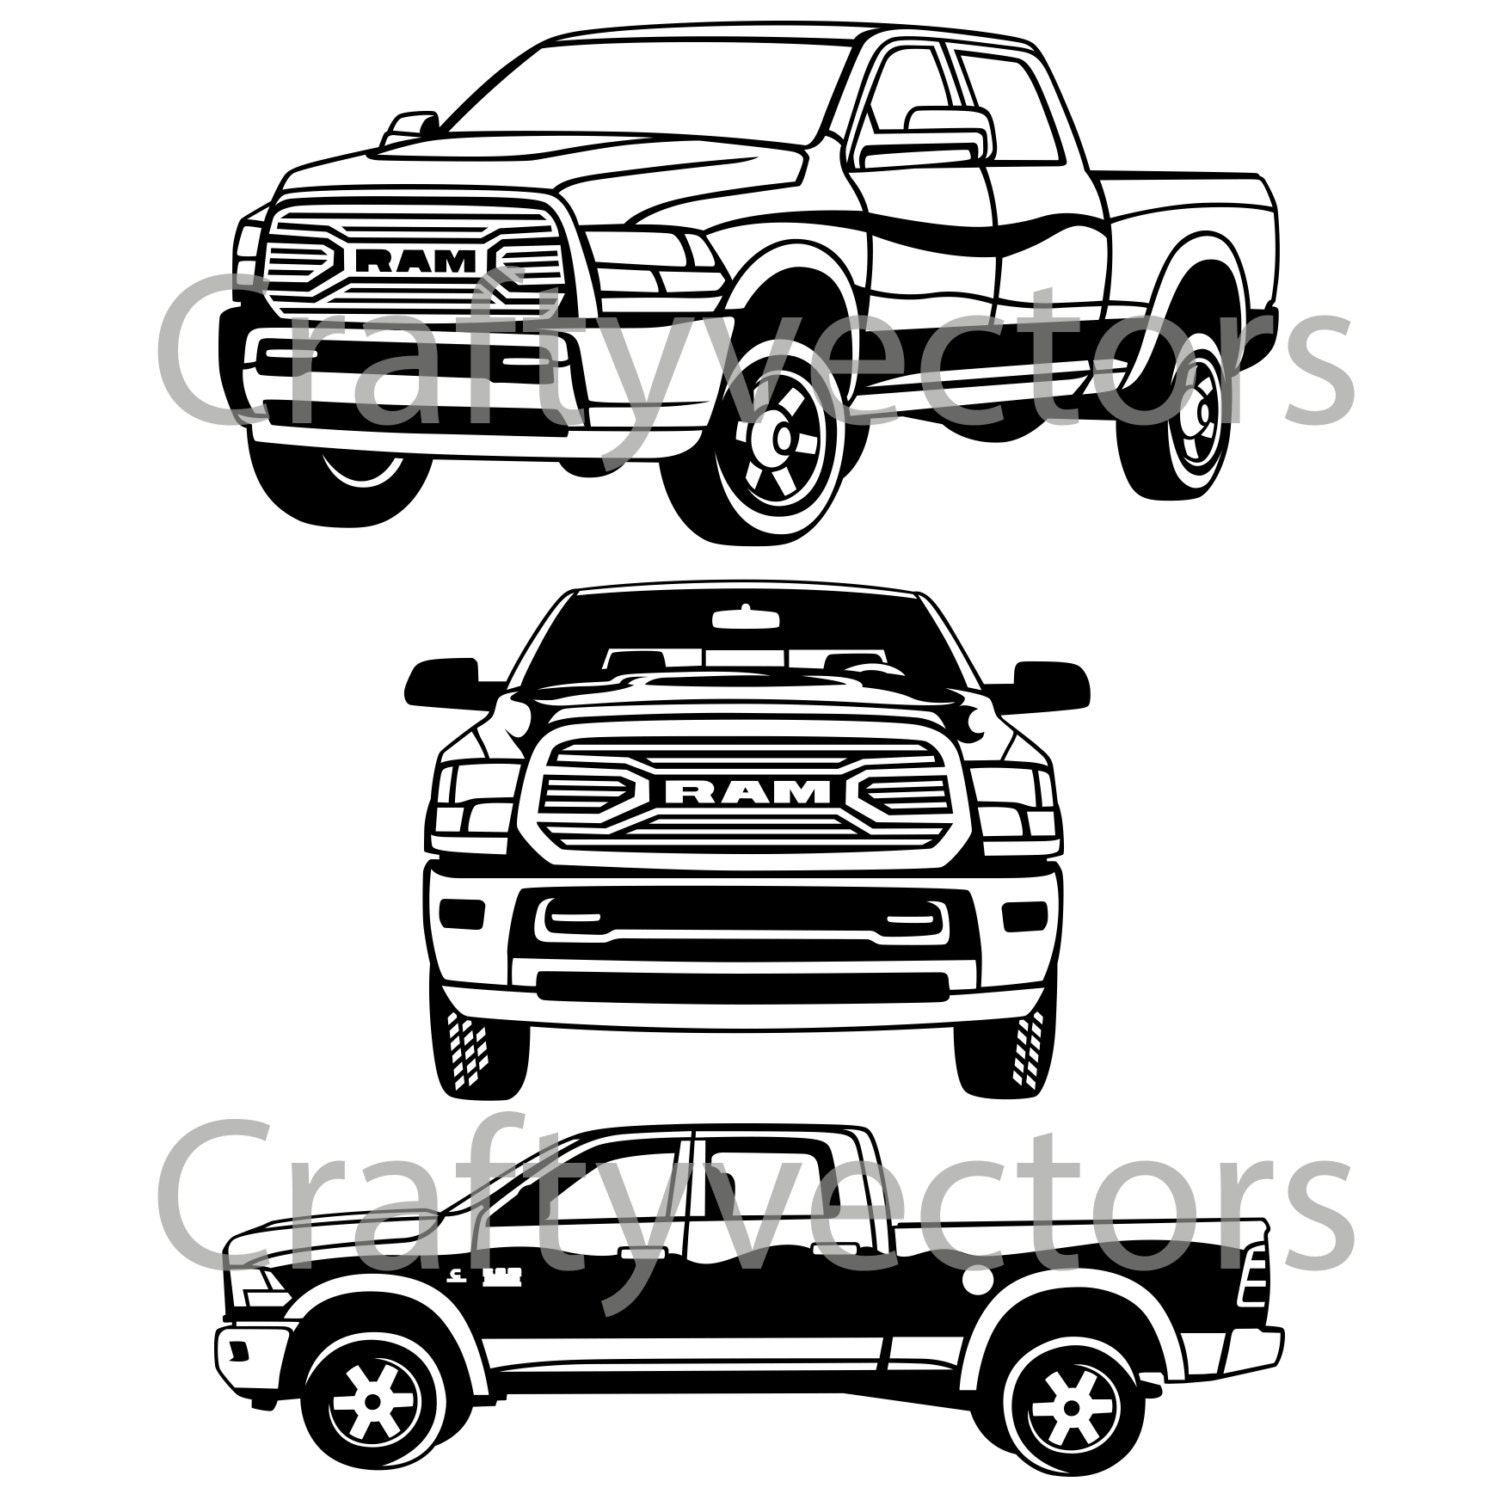 8fvv6 1500 Express Adjust 2014 Ram 1500 4x4 Headlights likewise 2003 also 2001 Dodge Ram Fuse Box 2003 Stratus Diagram Ianxhdb Dakota Panel Wiring 82 Diagrams Car Schematics Radio Connectors Wire Harness Recall 2005 Durango Truck Neon Color Codes 2004 19 Contemporary Icon additionally Showthread further Where Is The Door Lock Relay On 97 Chevy K1500  I Have No Po    574308. on dodge ram 1500 4x4